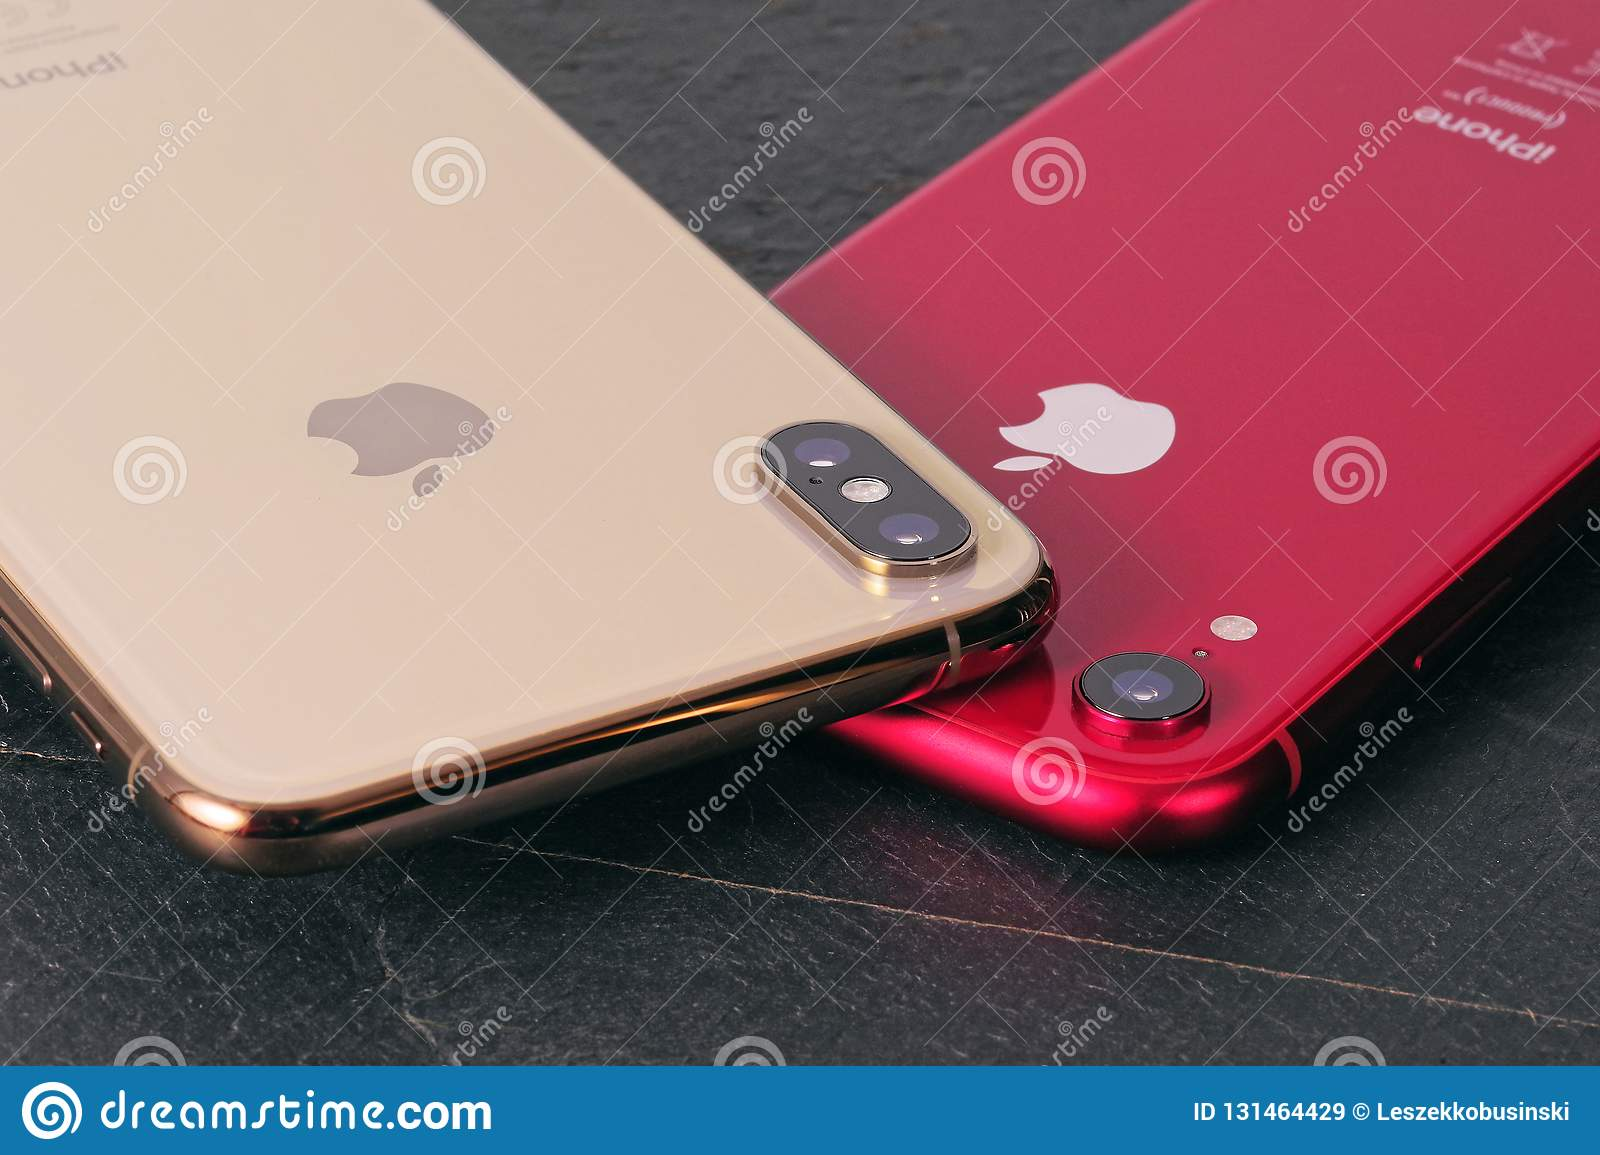 Golden IPhone XS Max And Red IPhone XR Editorial Stock Image